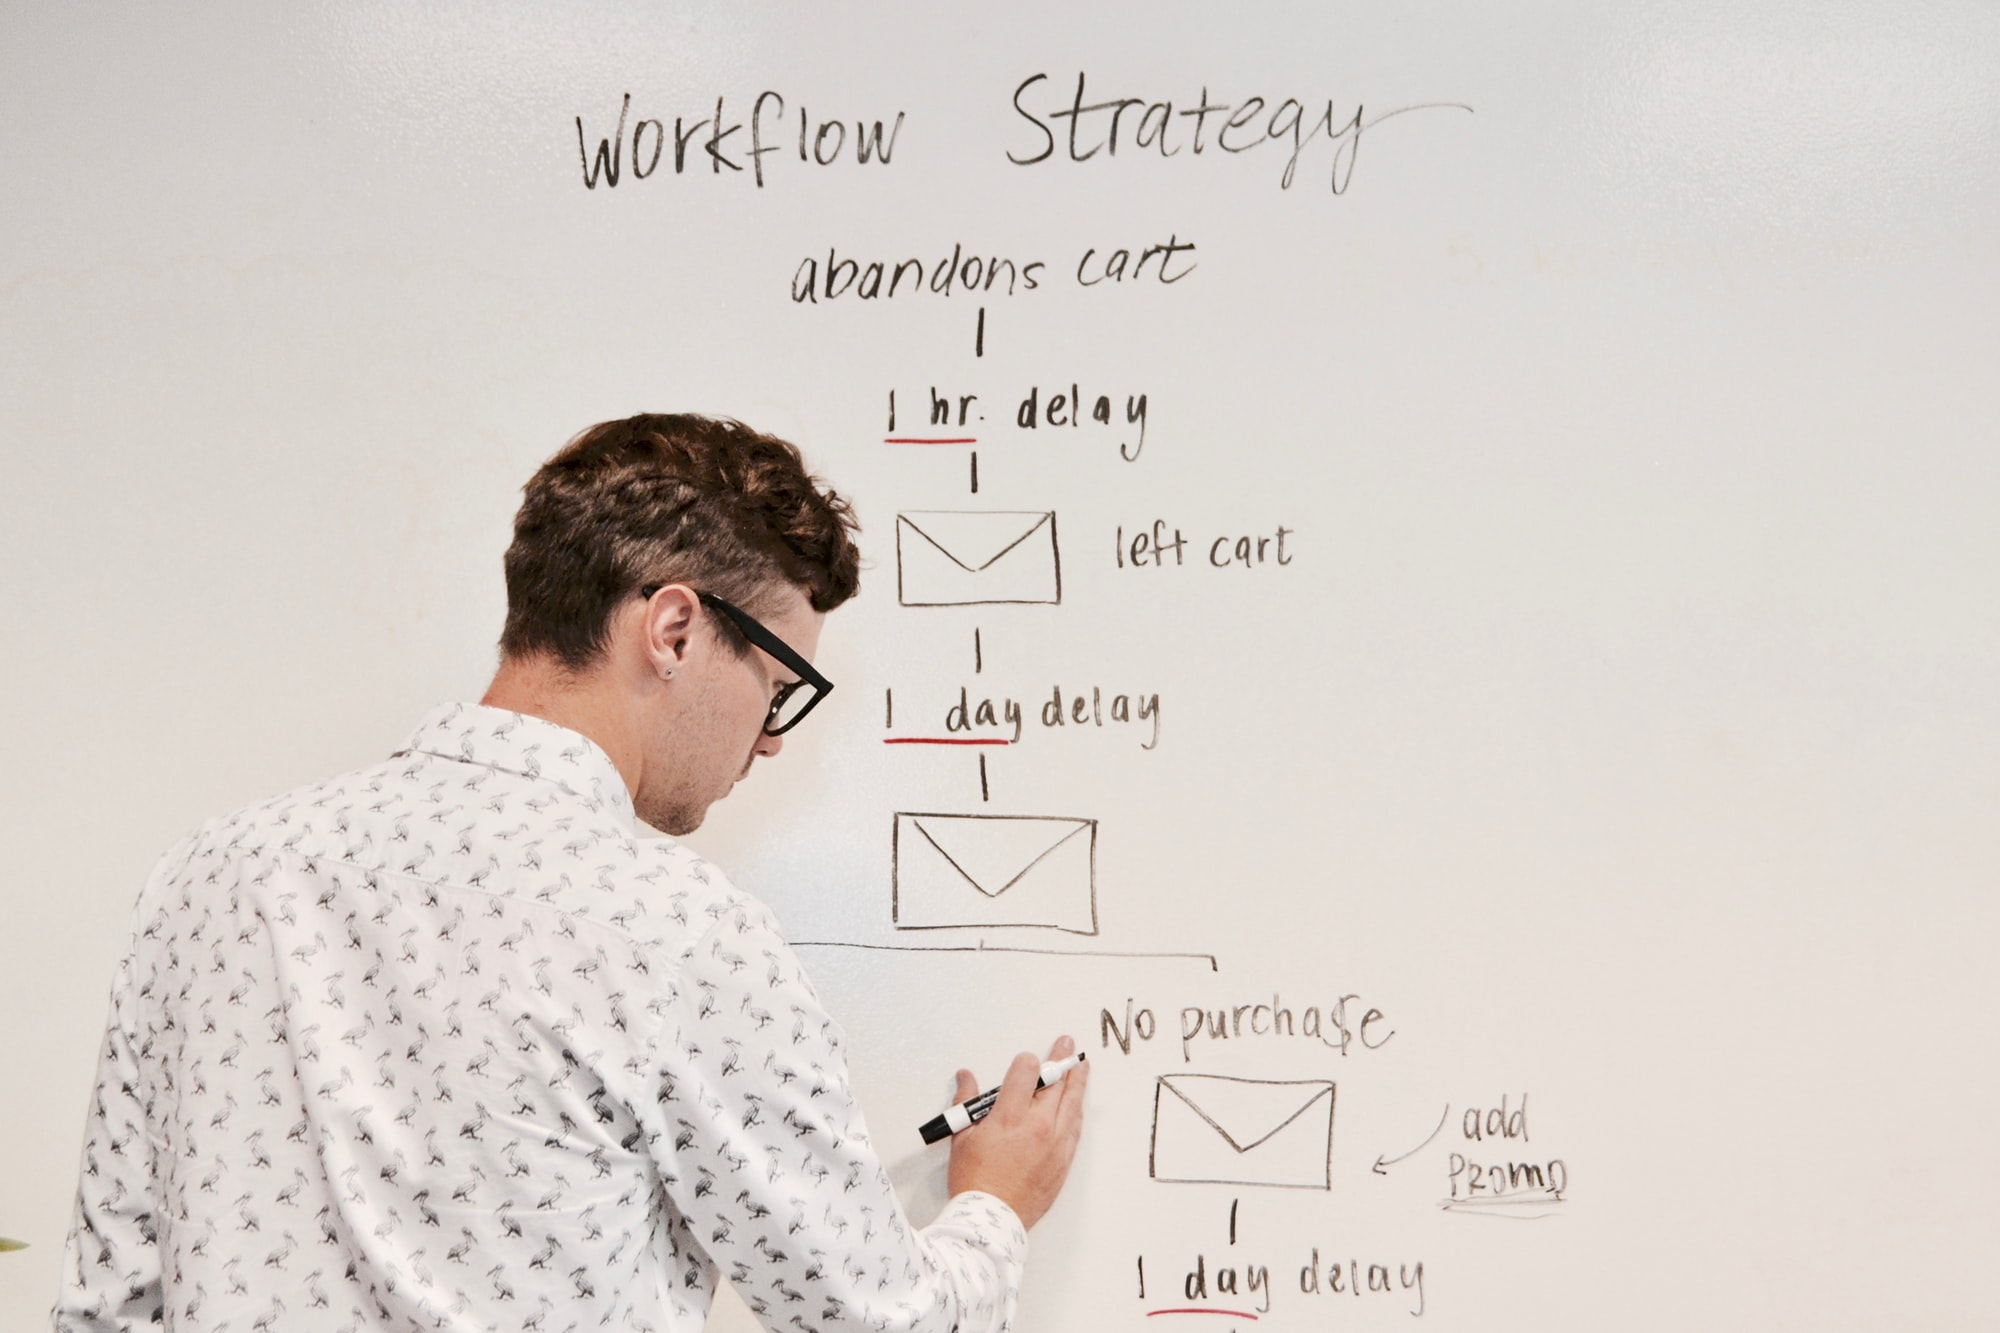 Marketing workflow strategy